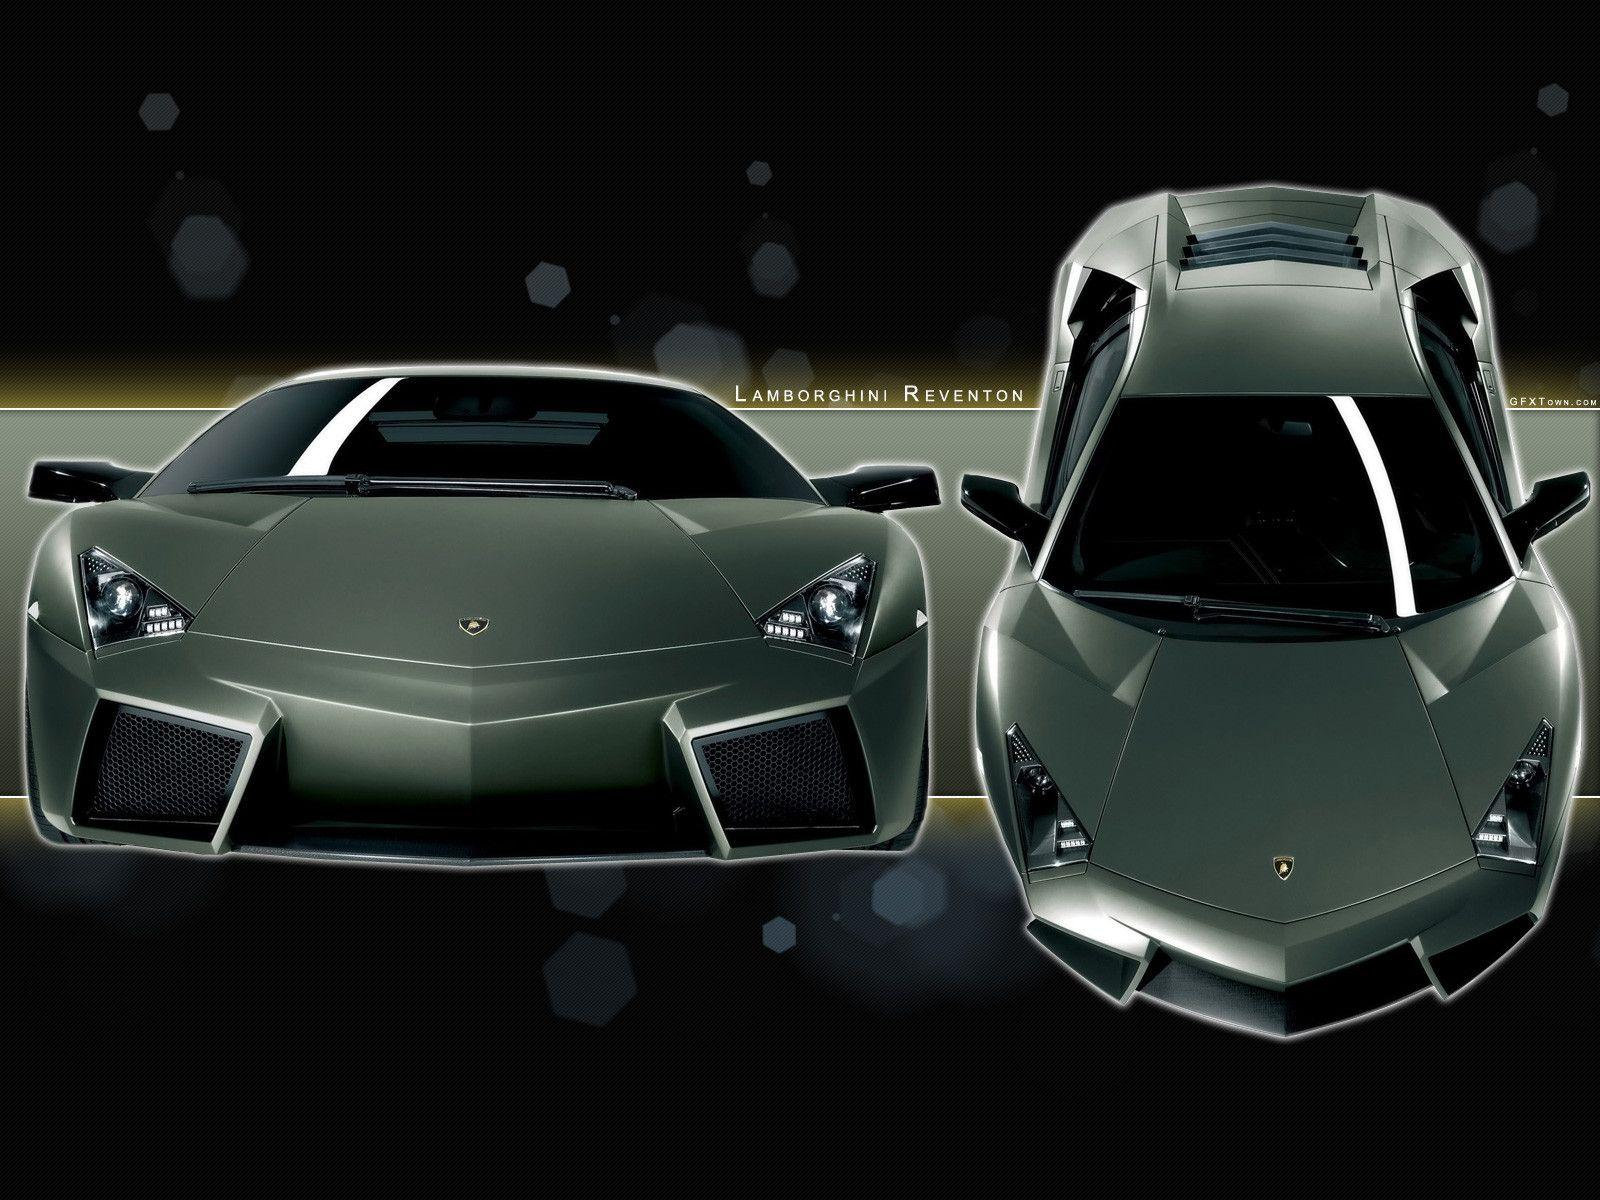 lamborghini reventon wallpapers wallpaper cave. Black Bedroom Furniture Sets. Home Design Ideas